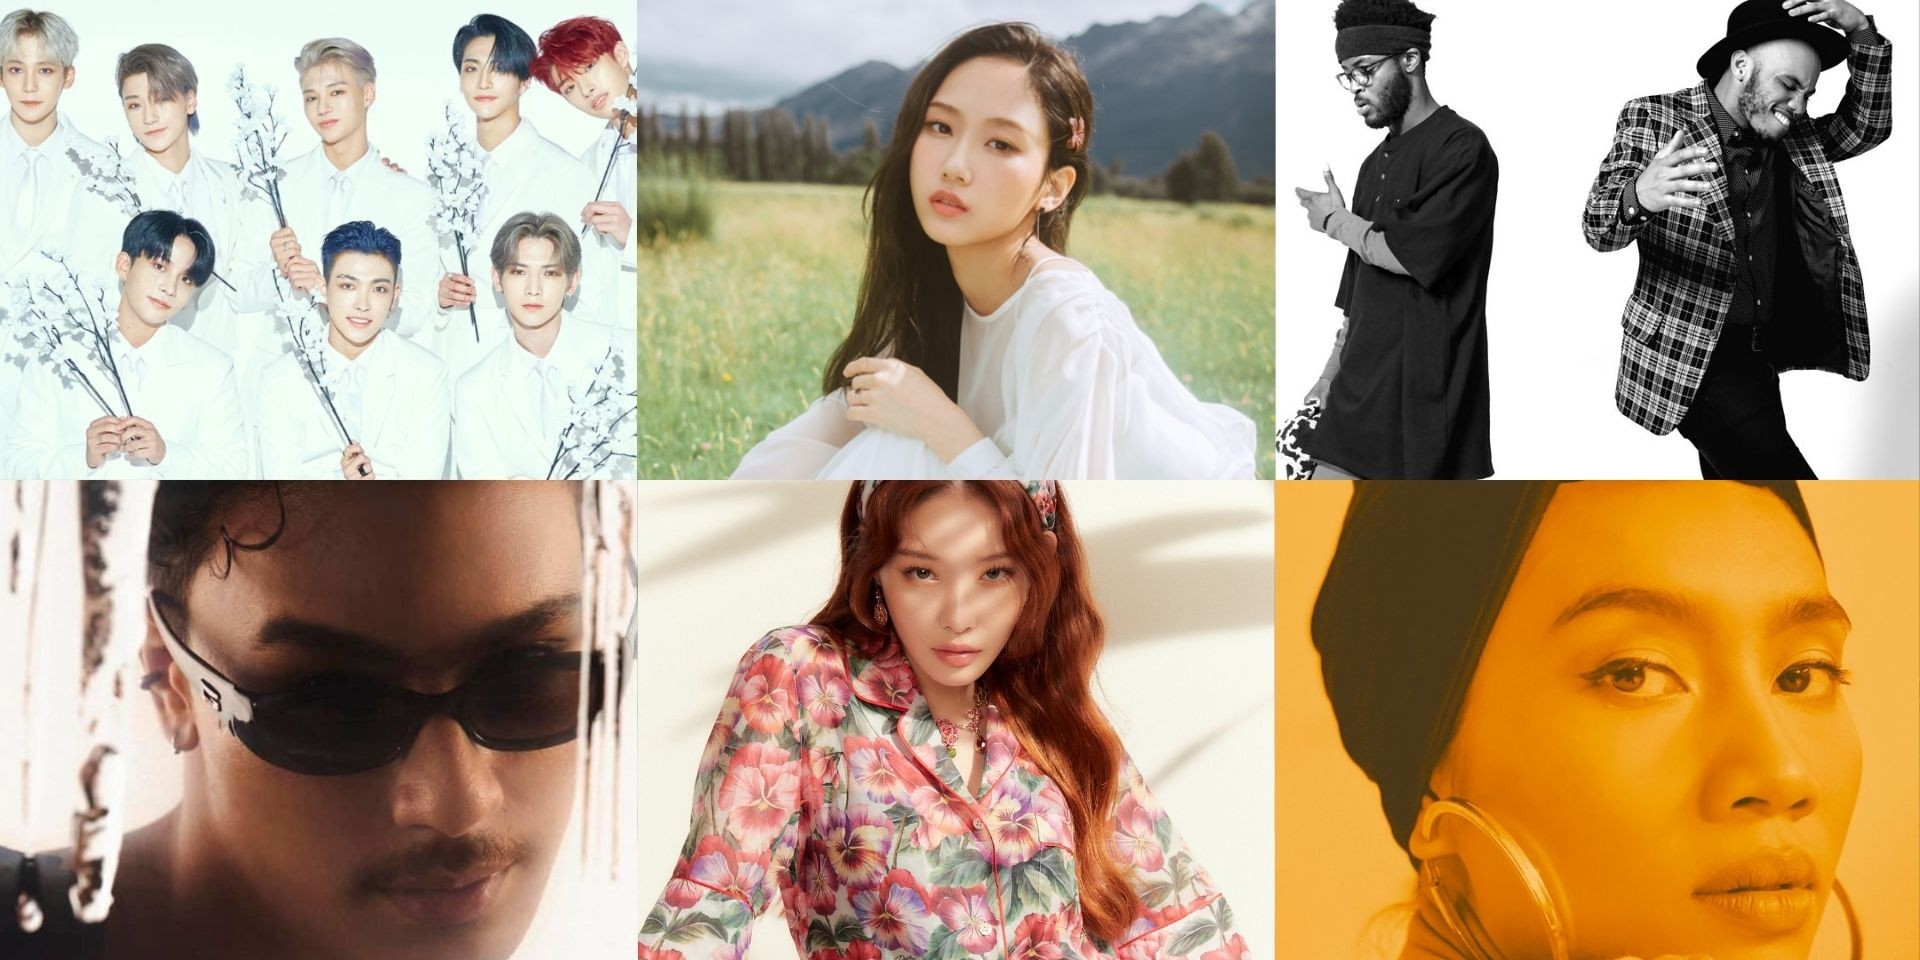 New live concert platform Eastern Standard Time to make debut with DOUBLE HAPPINESS Winter Festival – NxWorries, CHUNG HA, Seori, Jason Dhakal, Yuna, ATEEZ, and more on the lineup